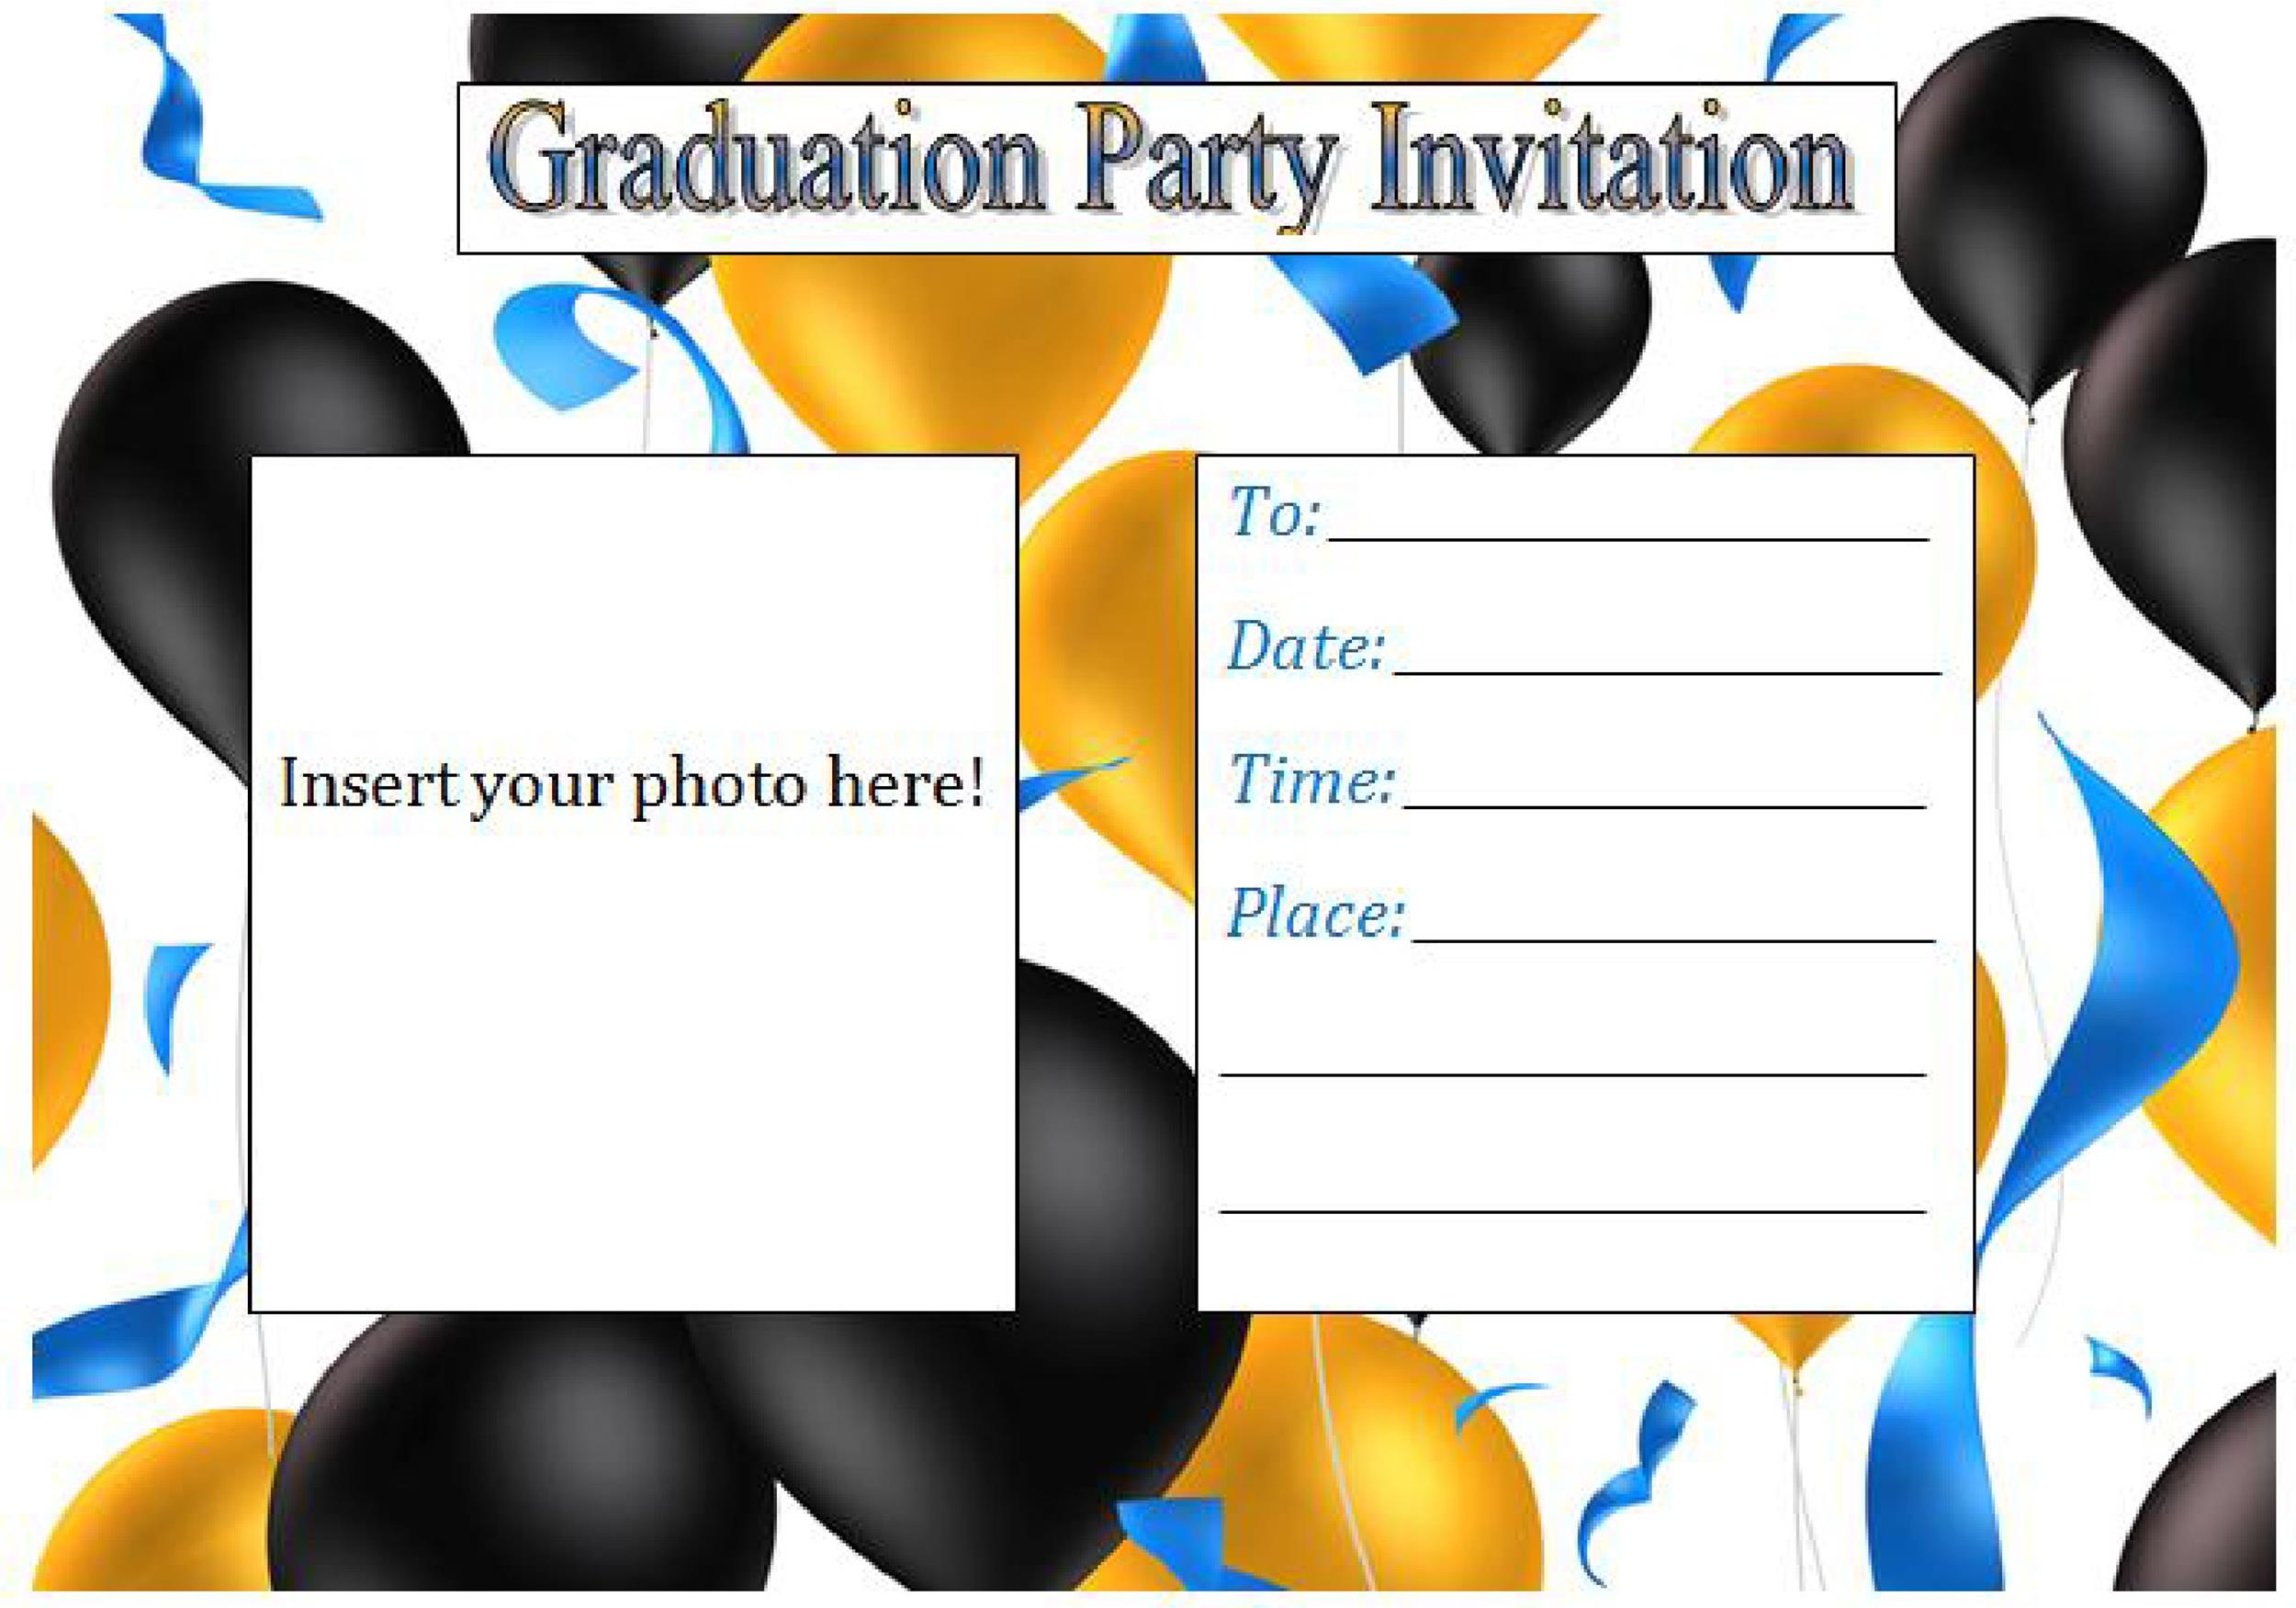 Graduation Party Invitation Templates Gangcraftnet - Party invitation template: graduation party invitation postcard templates free